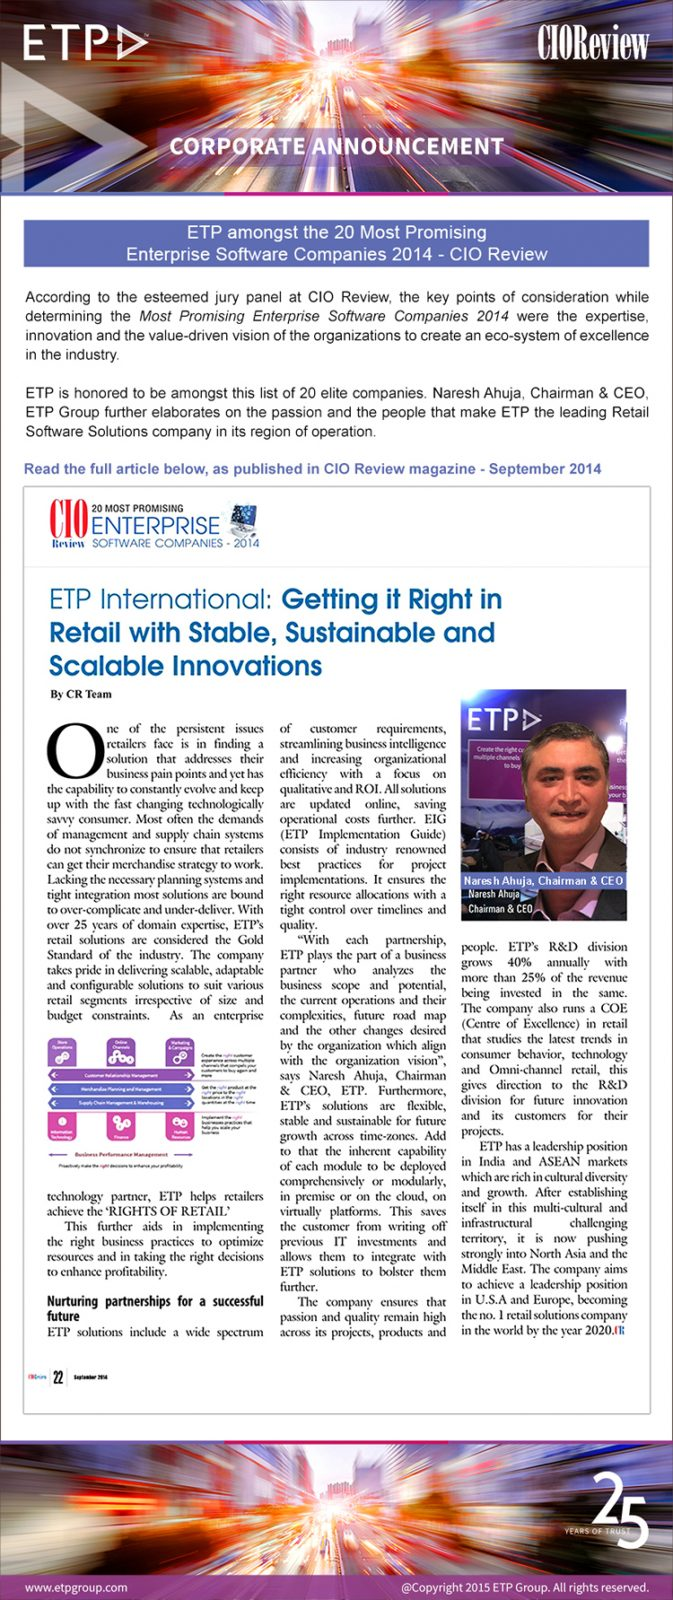 ETP amongst the 20 Most Promising Enterprise Software Companies 2014 - CIO Review